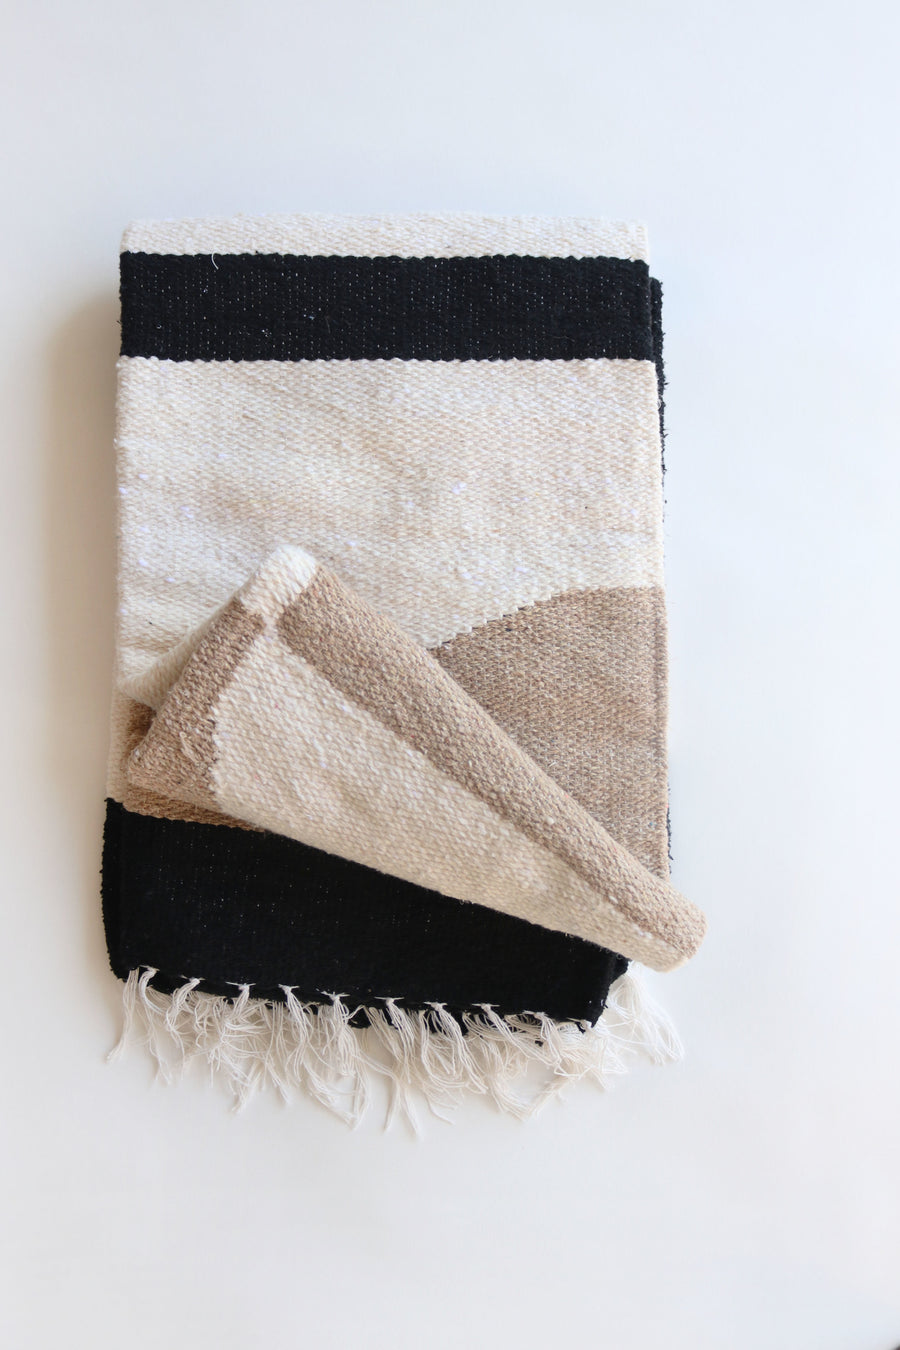 The Pismo // Handwoven Blanket